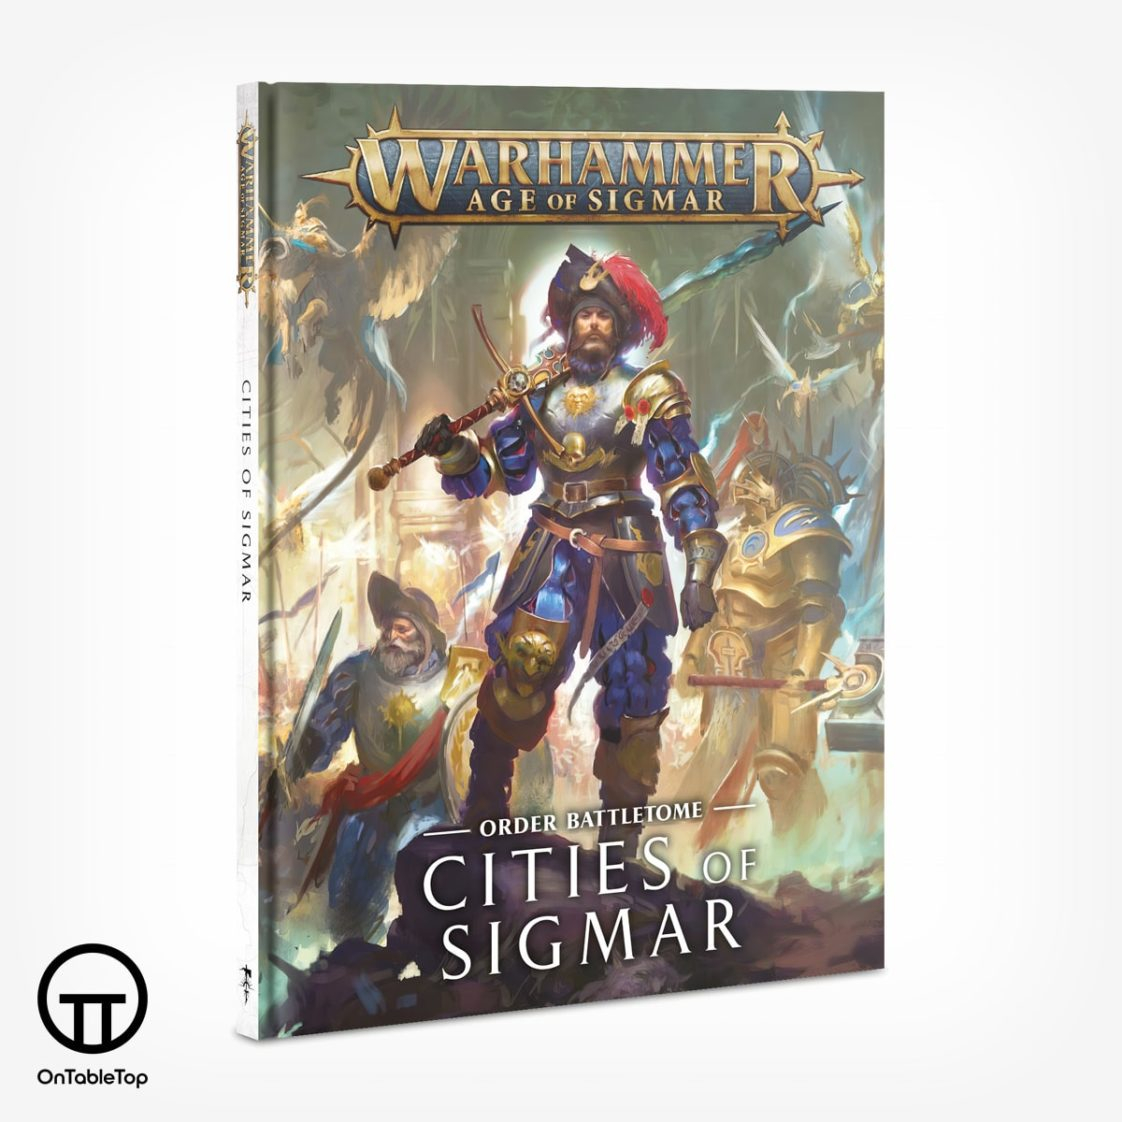 Battletome-Cities-of-Sigmar-60030299003